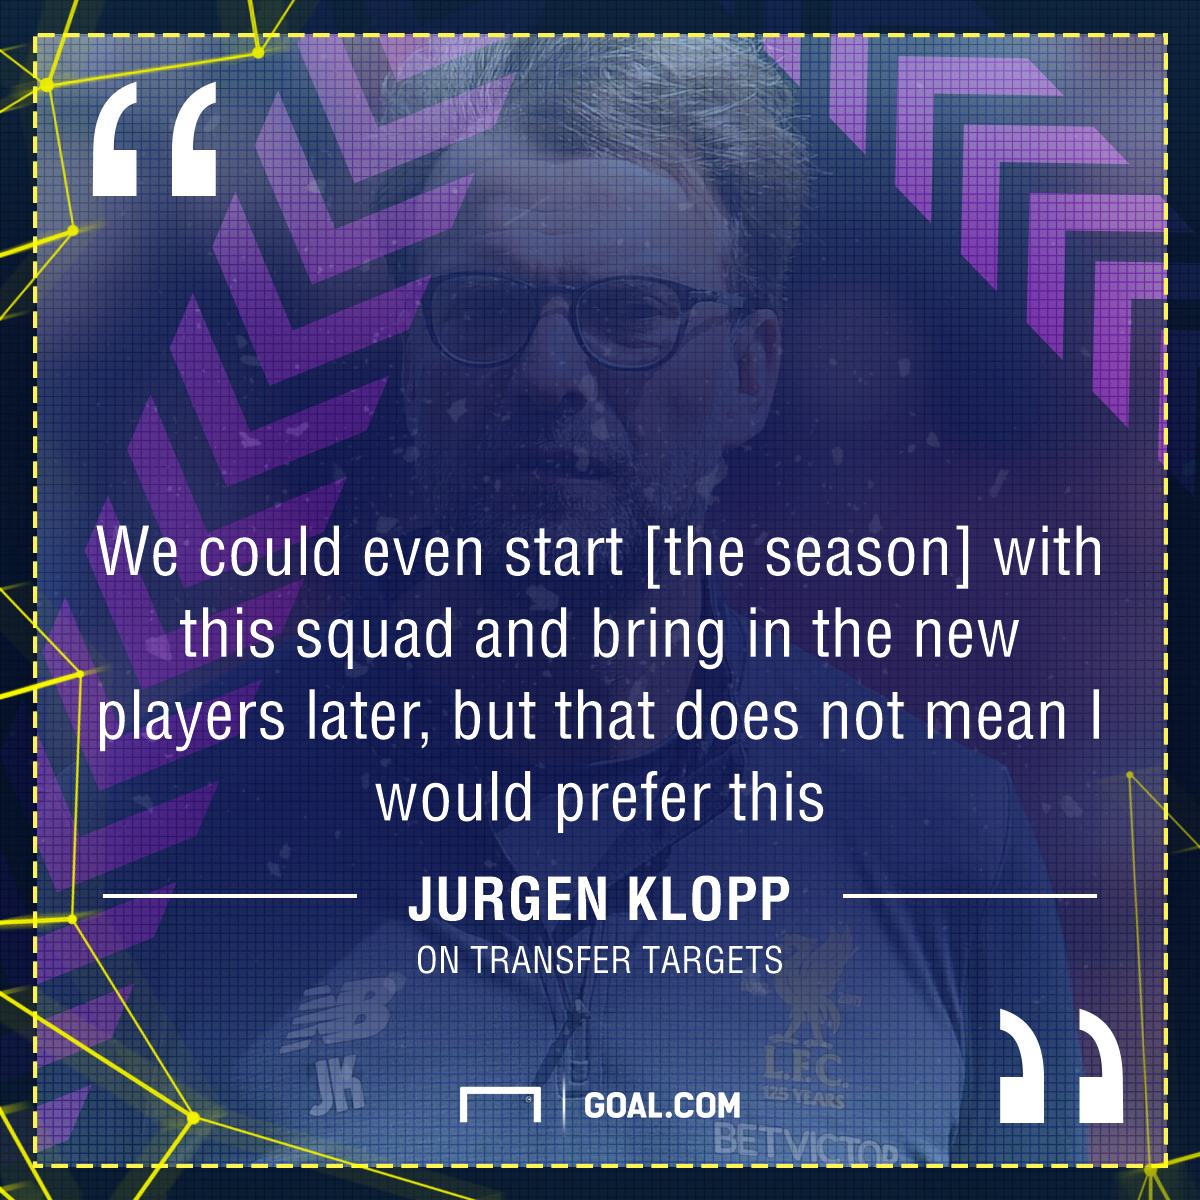 GFX Jurgen Klopp quote transfers